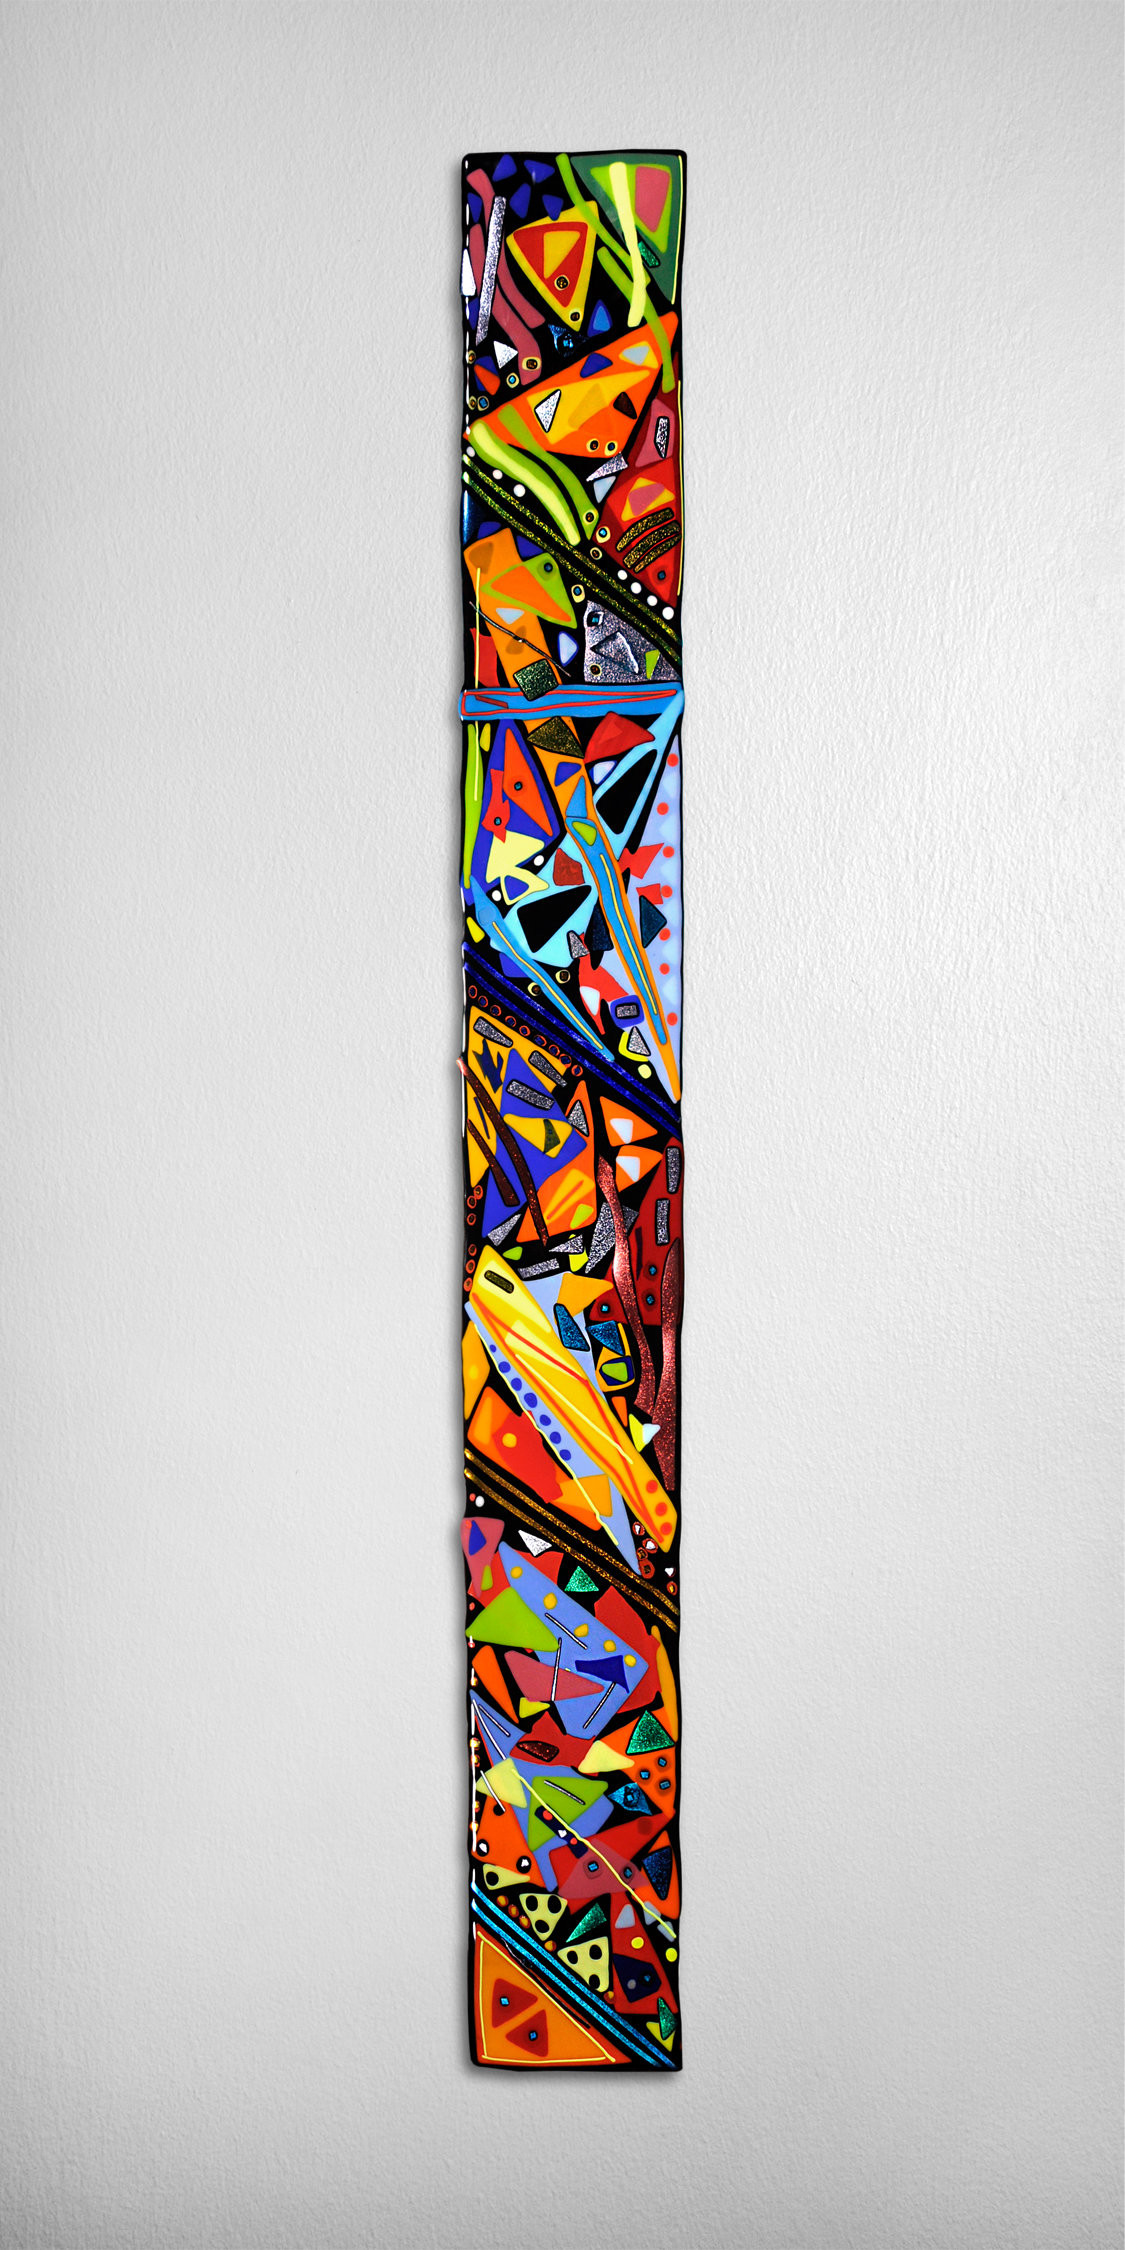 fused glass wall vase of helen rudy glass artist artful home regarding mardi gras wall panel by helen rudy art glass wall sculpture